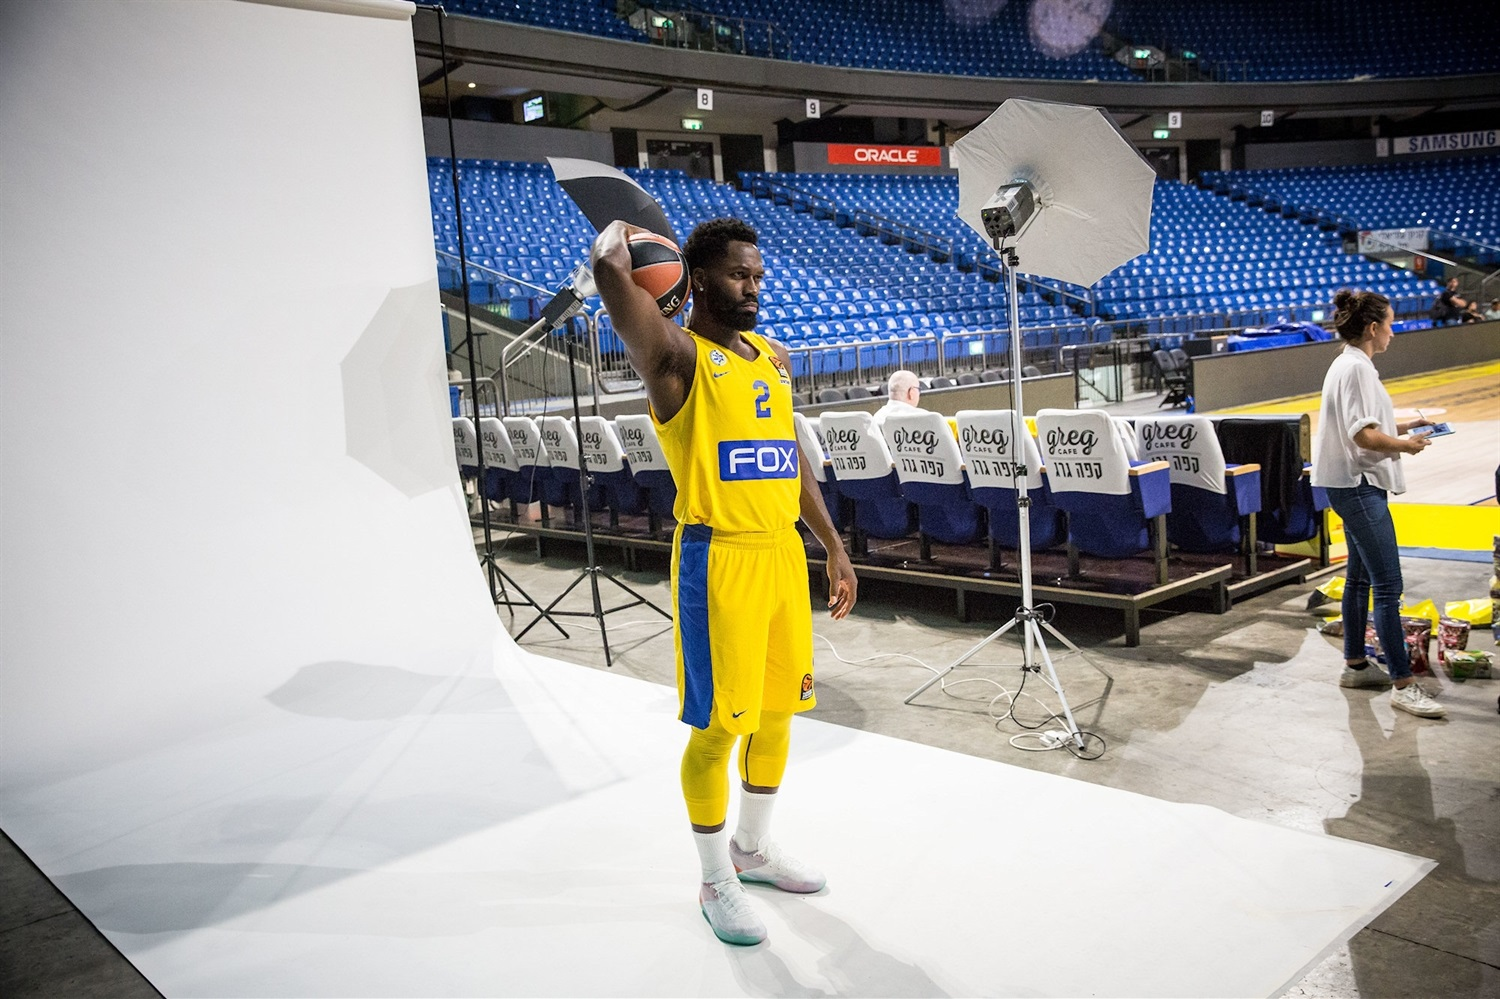 Jeremy Pargo - Maccabi FOX Tel Aviv Media Day 2018 (photo Maccabi) - EB18